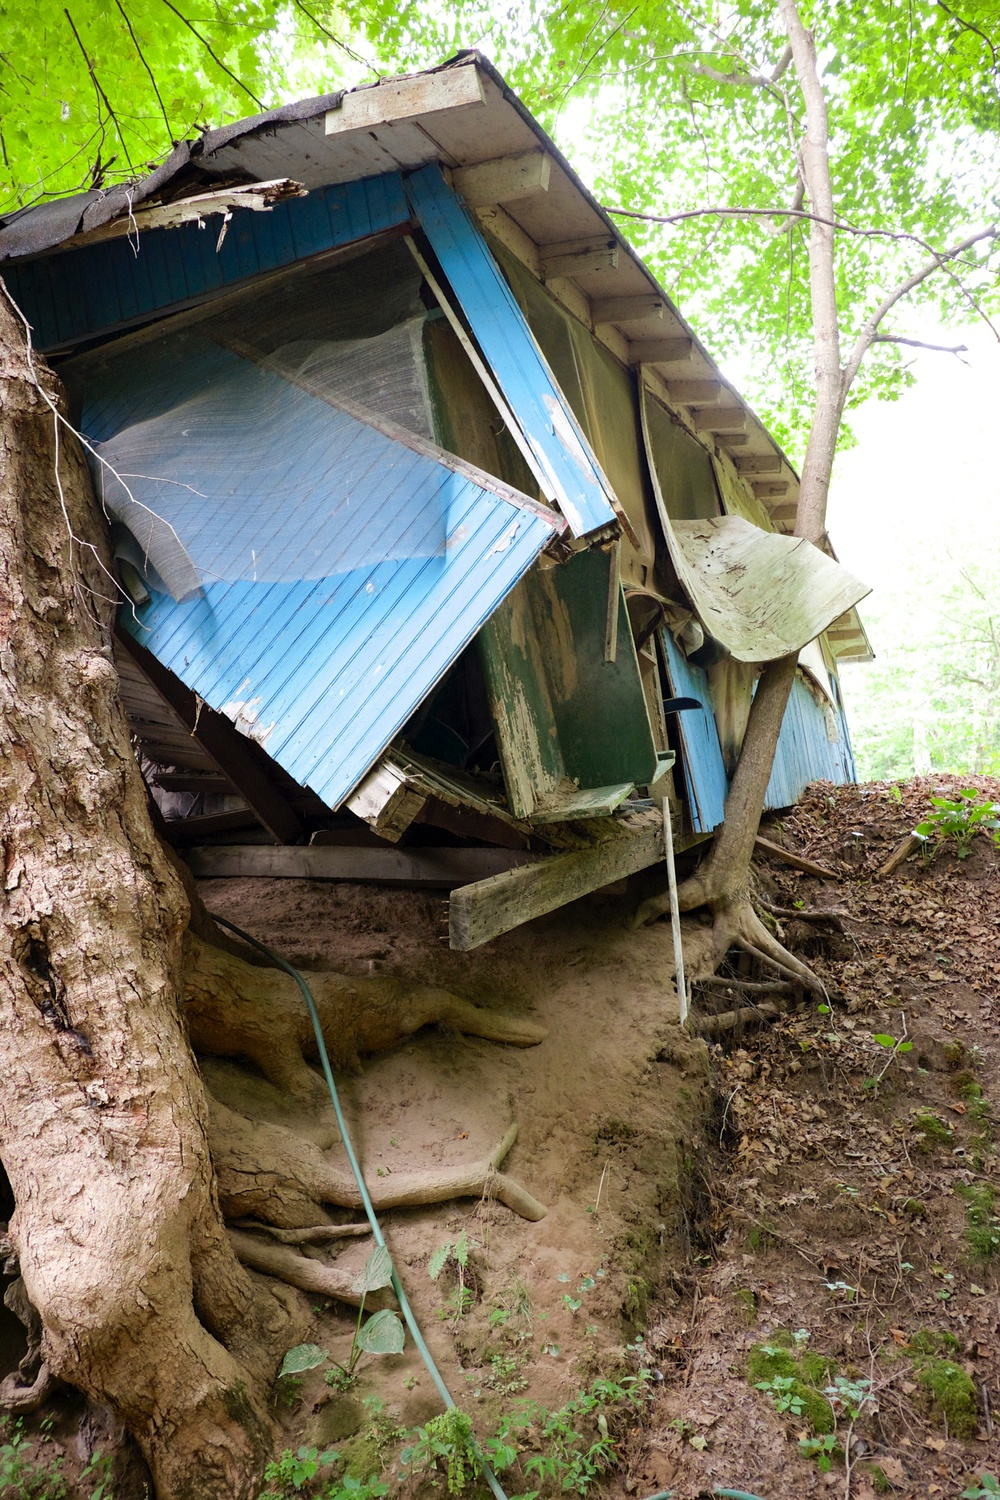 The second cottage was being held up by a large tree gripping the side of a hill.